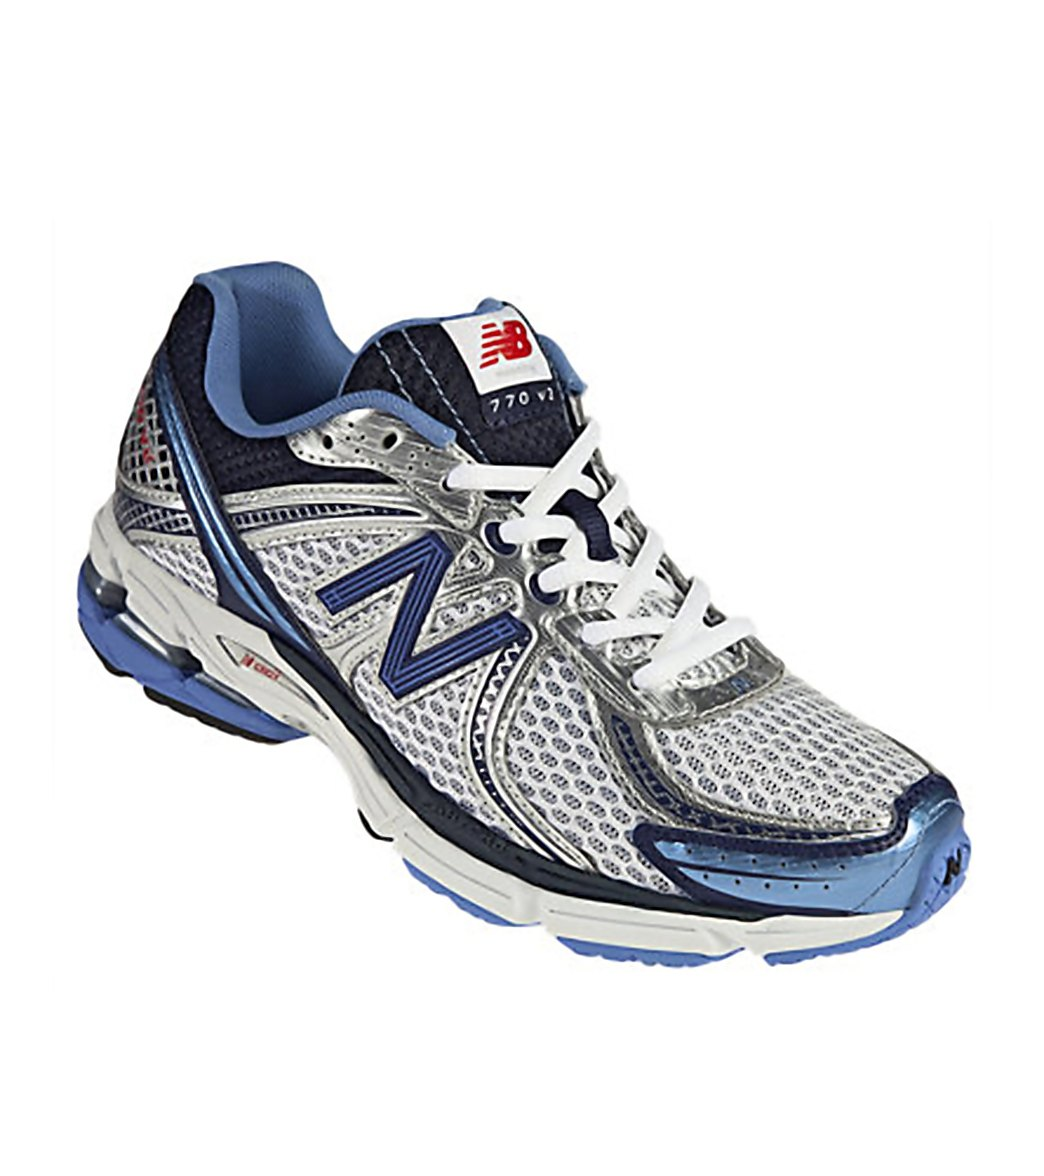 92e060a7f4dcf New Balance Women's Light Stability W770v2 Running Shoe at SwimOutlet.com - Free  Shipping